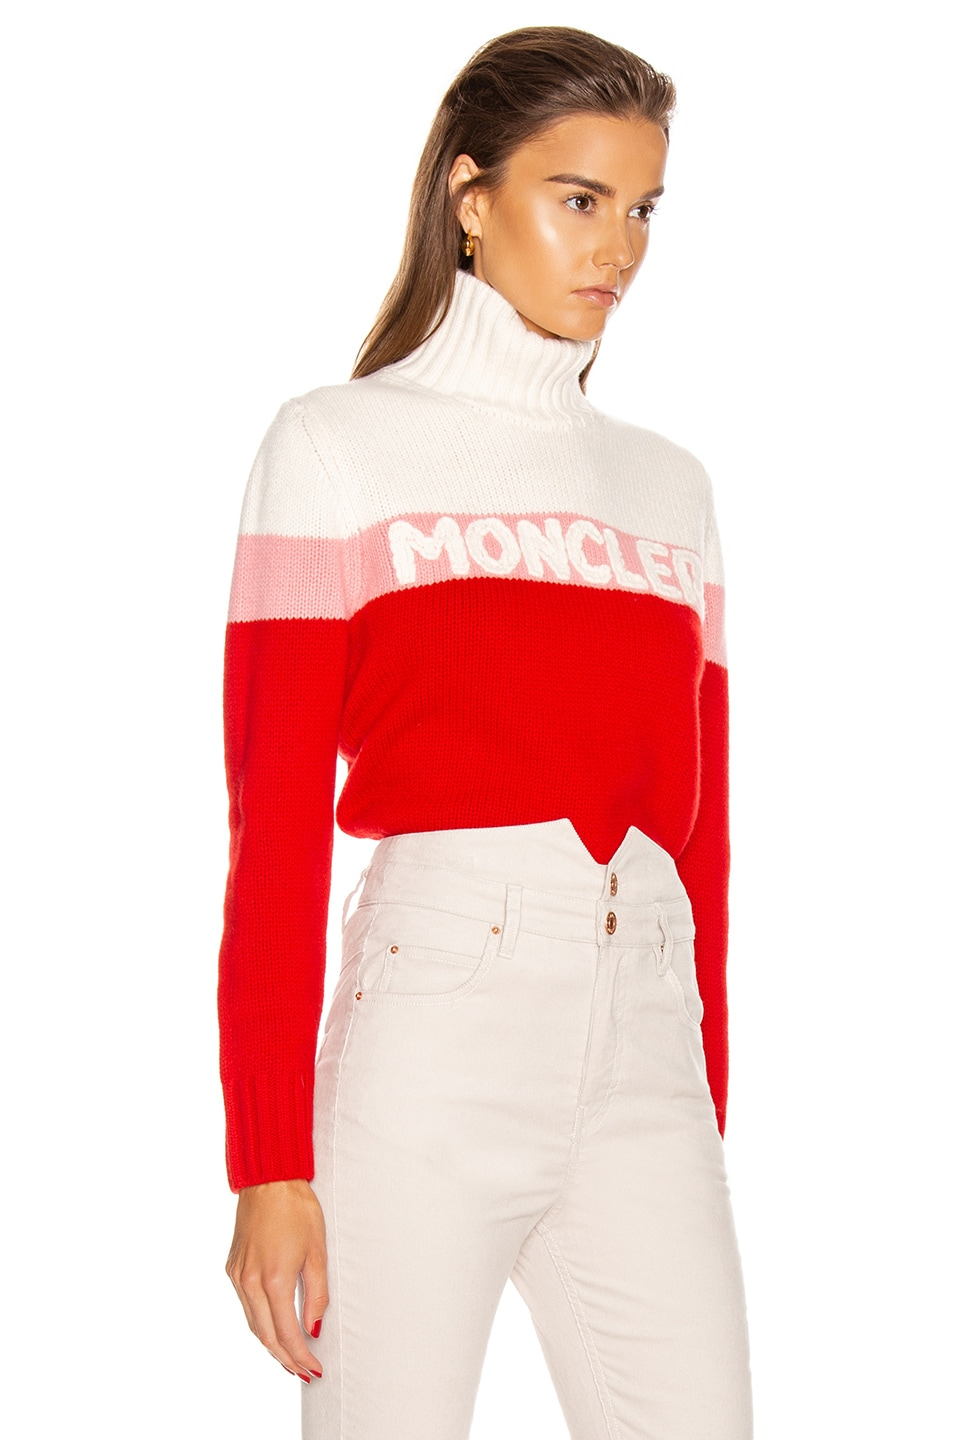 Image 2 of Moncler Tricot Cyclist Sweater in Crimson, Pink & White